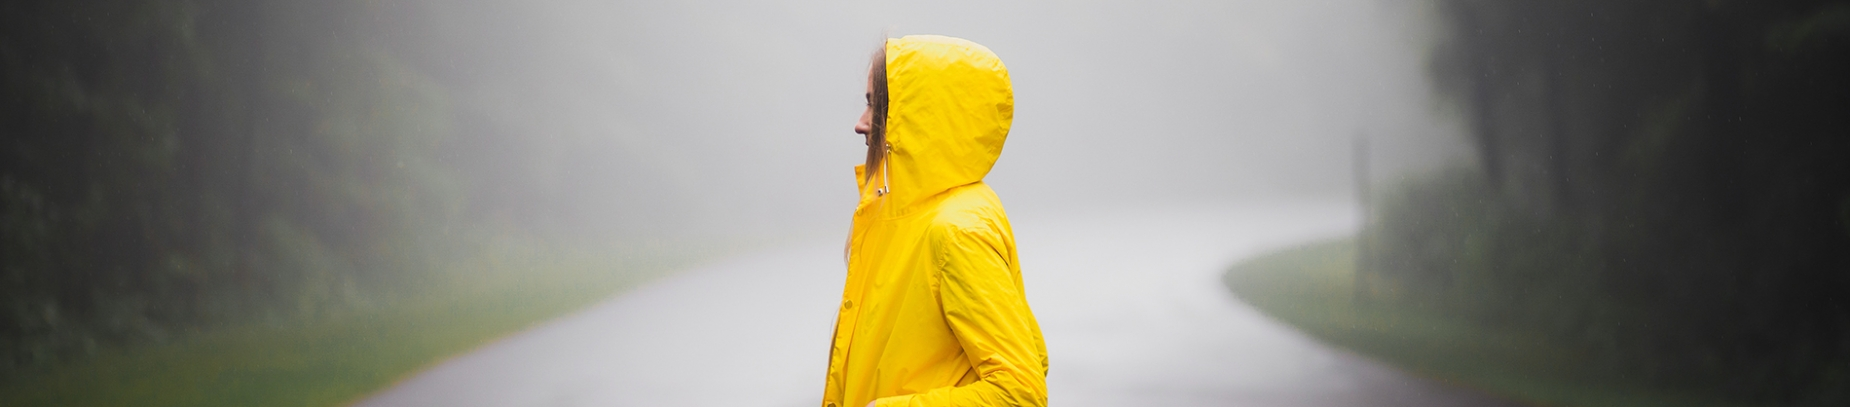 A girl in a bright yellow coat stood on a road in the rain and mist